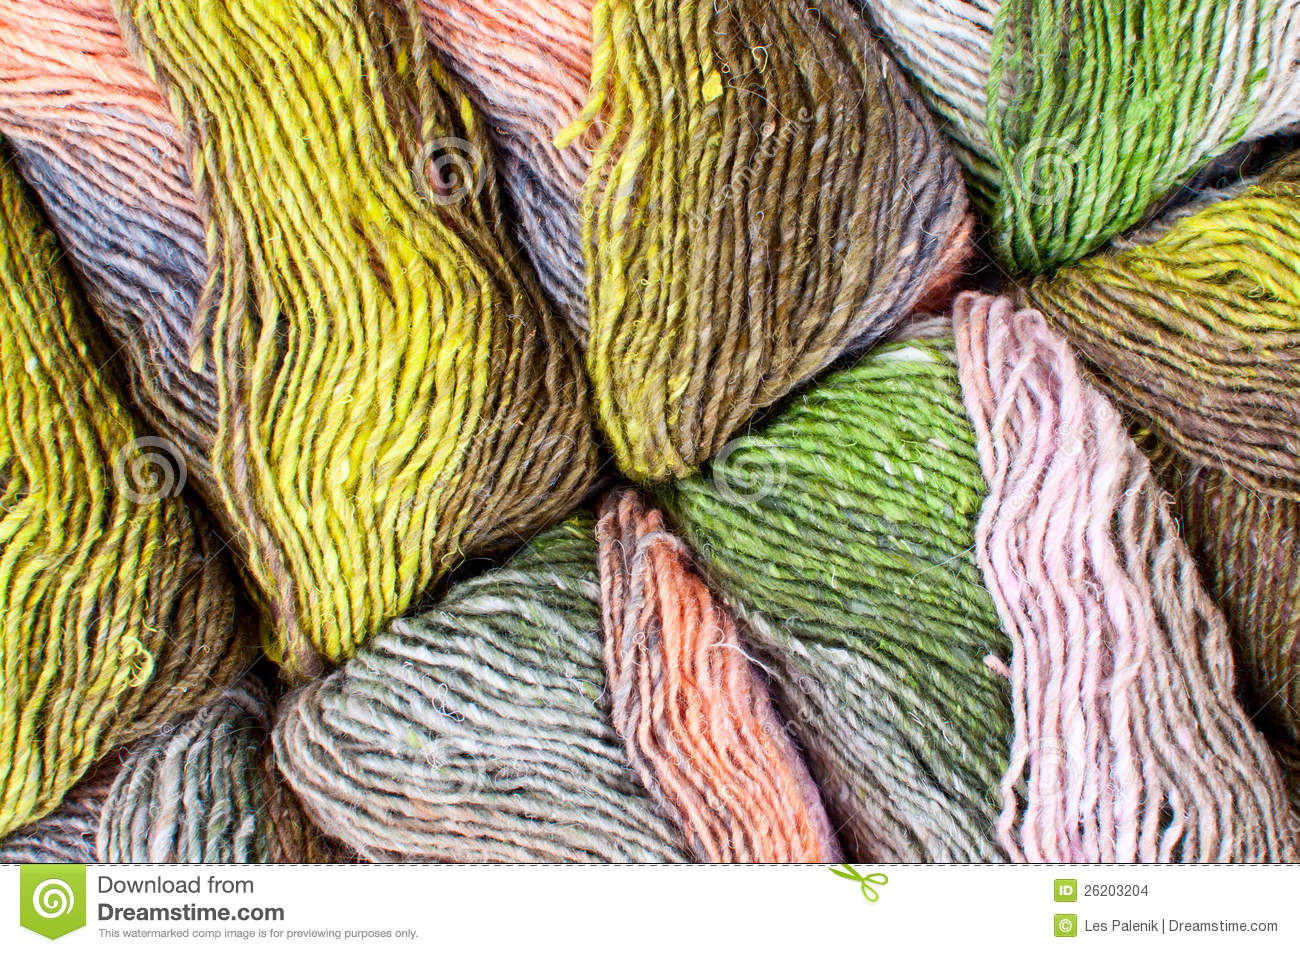 Knitted Glove Pattern : Colorful Knitting Yarn - Pattern/ Background Stock Images - Image: 26203204